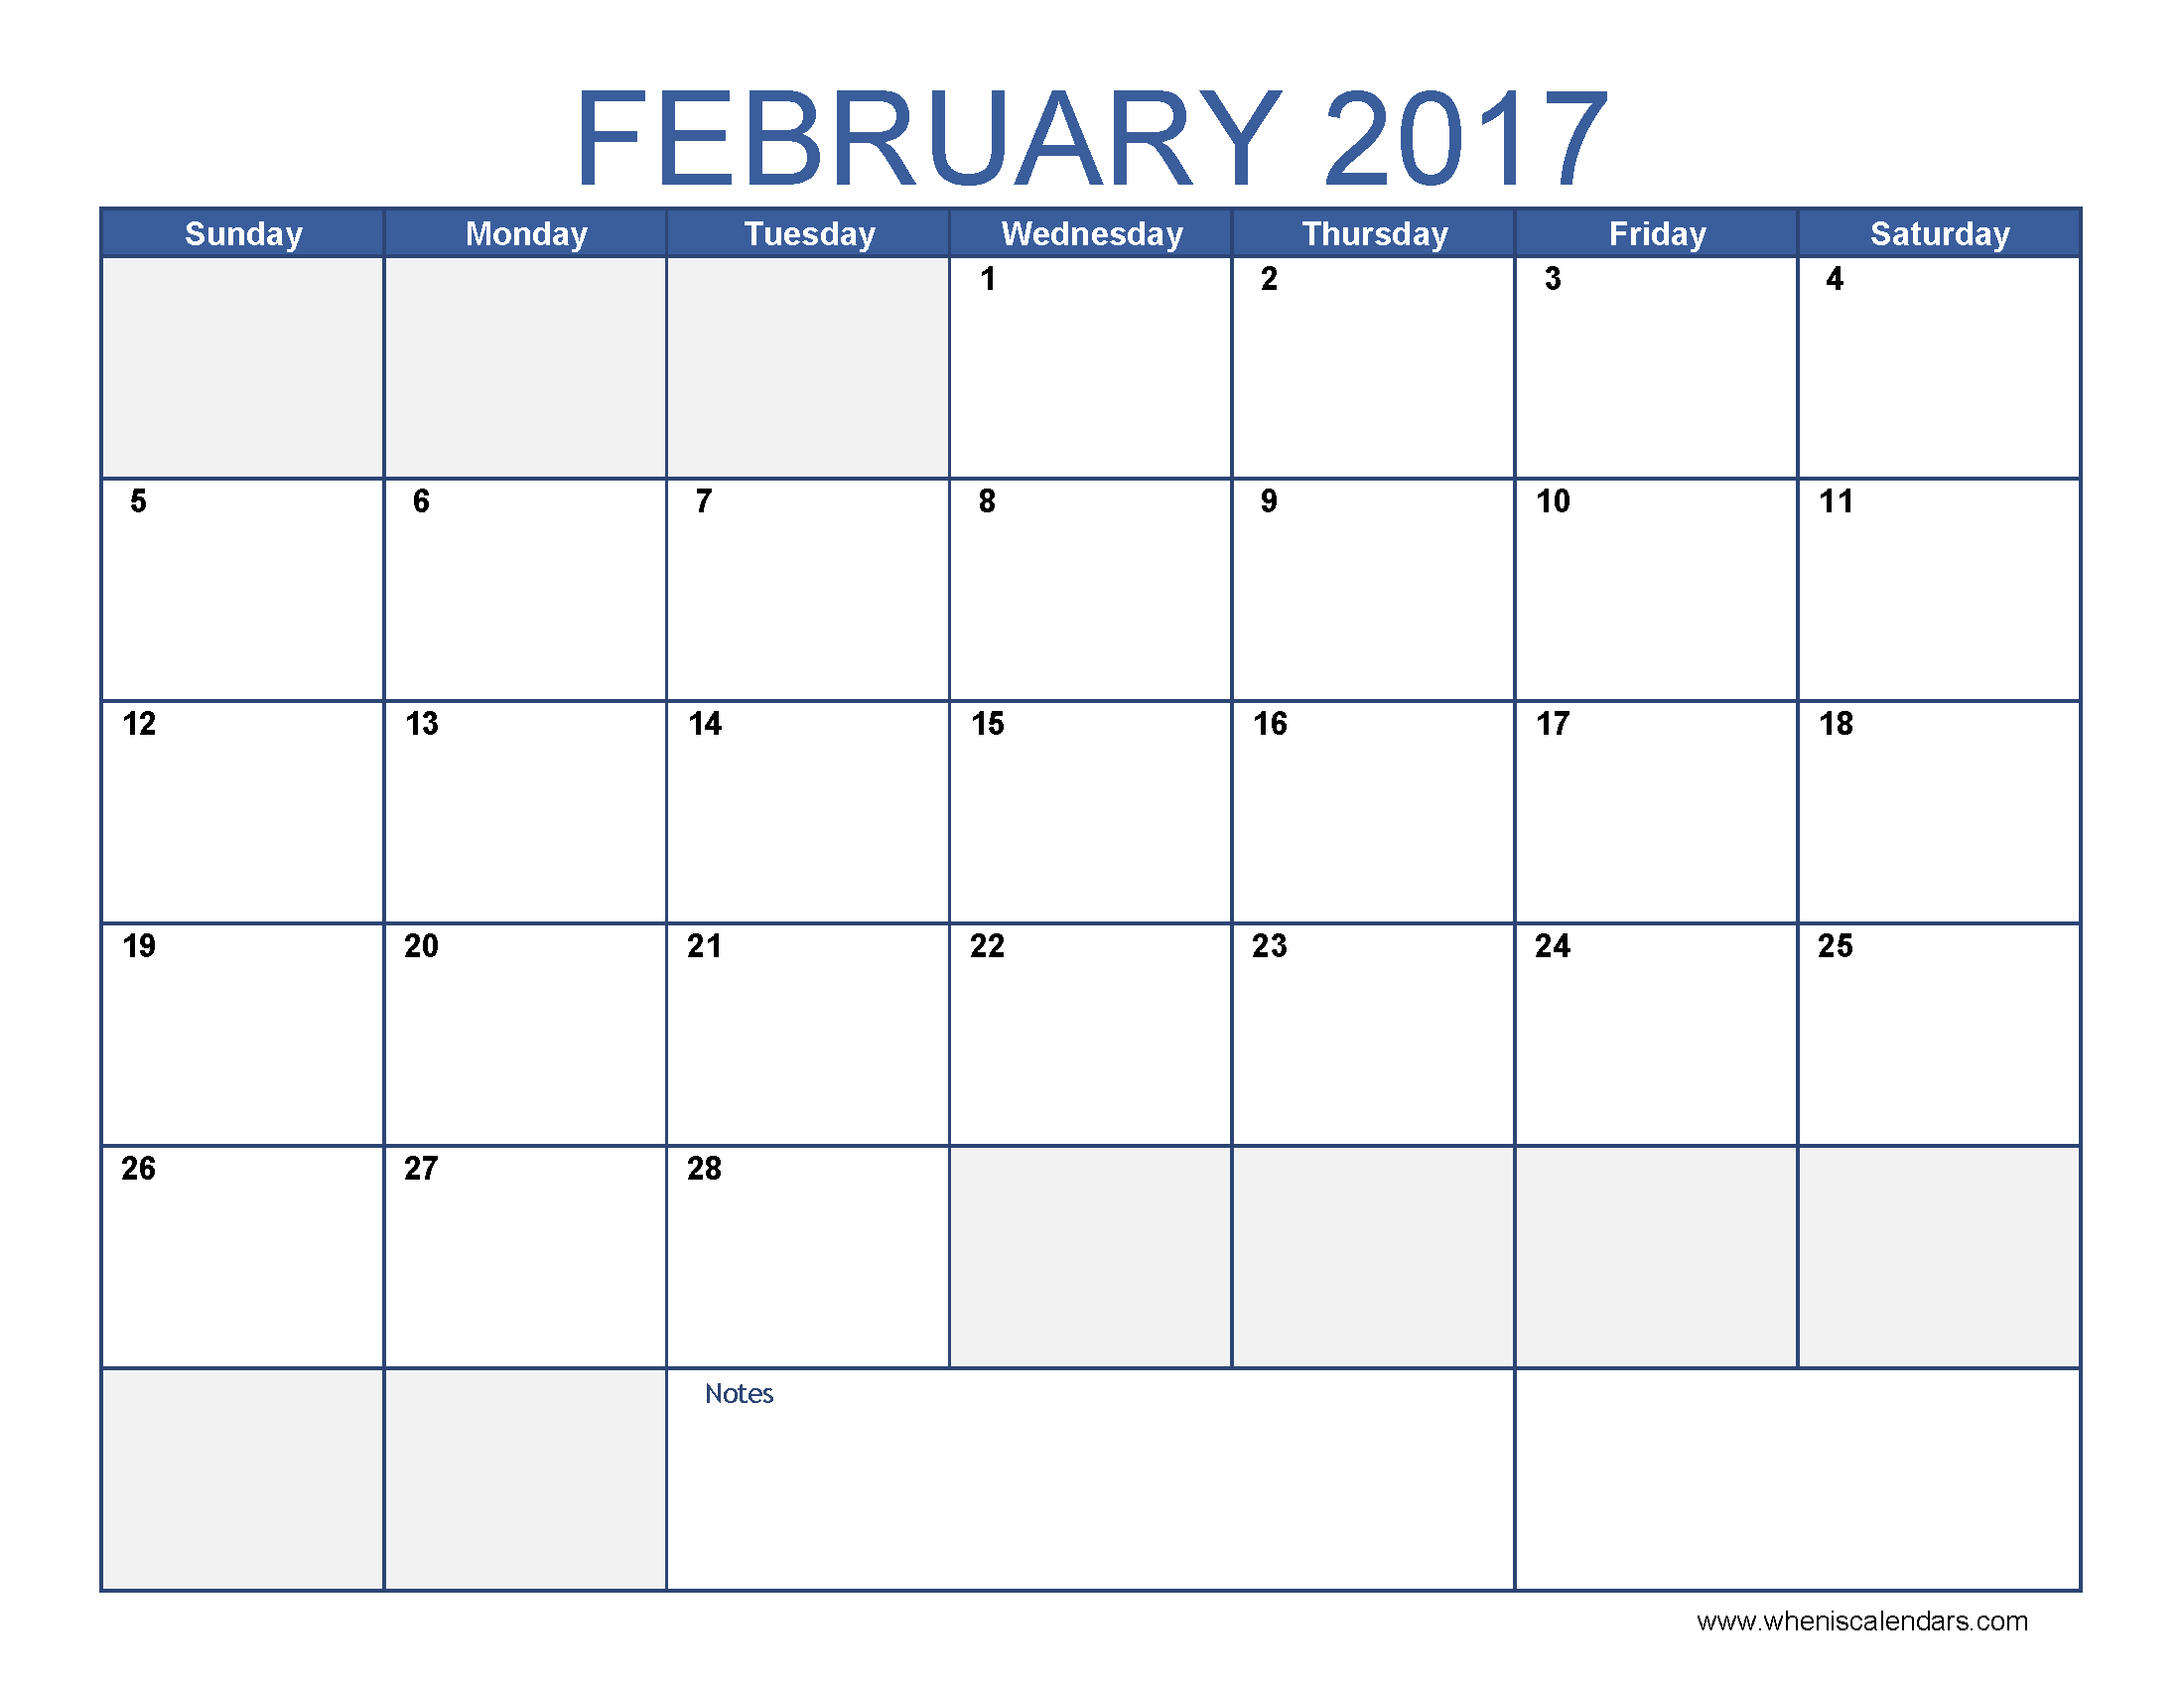 February Blank Calendar 2017 Templates - Blank Feb 2017 Calendar Word